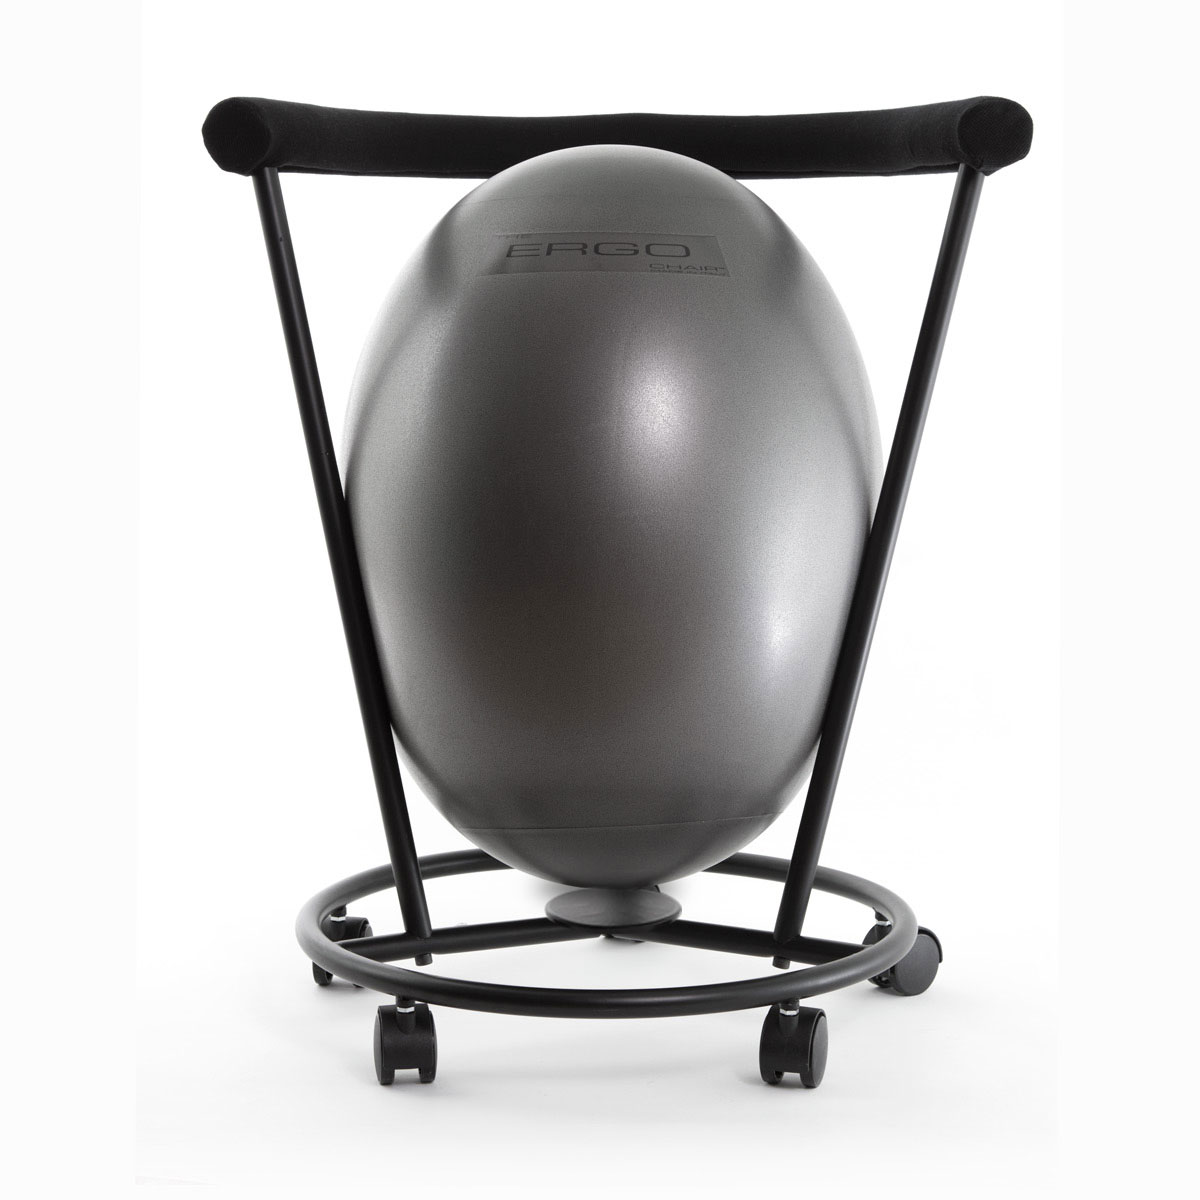 Yoga Ball Desk Chair Original Ergo Chair The Ergo Chair